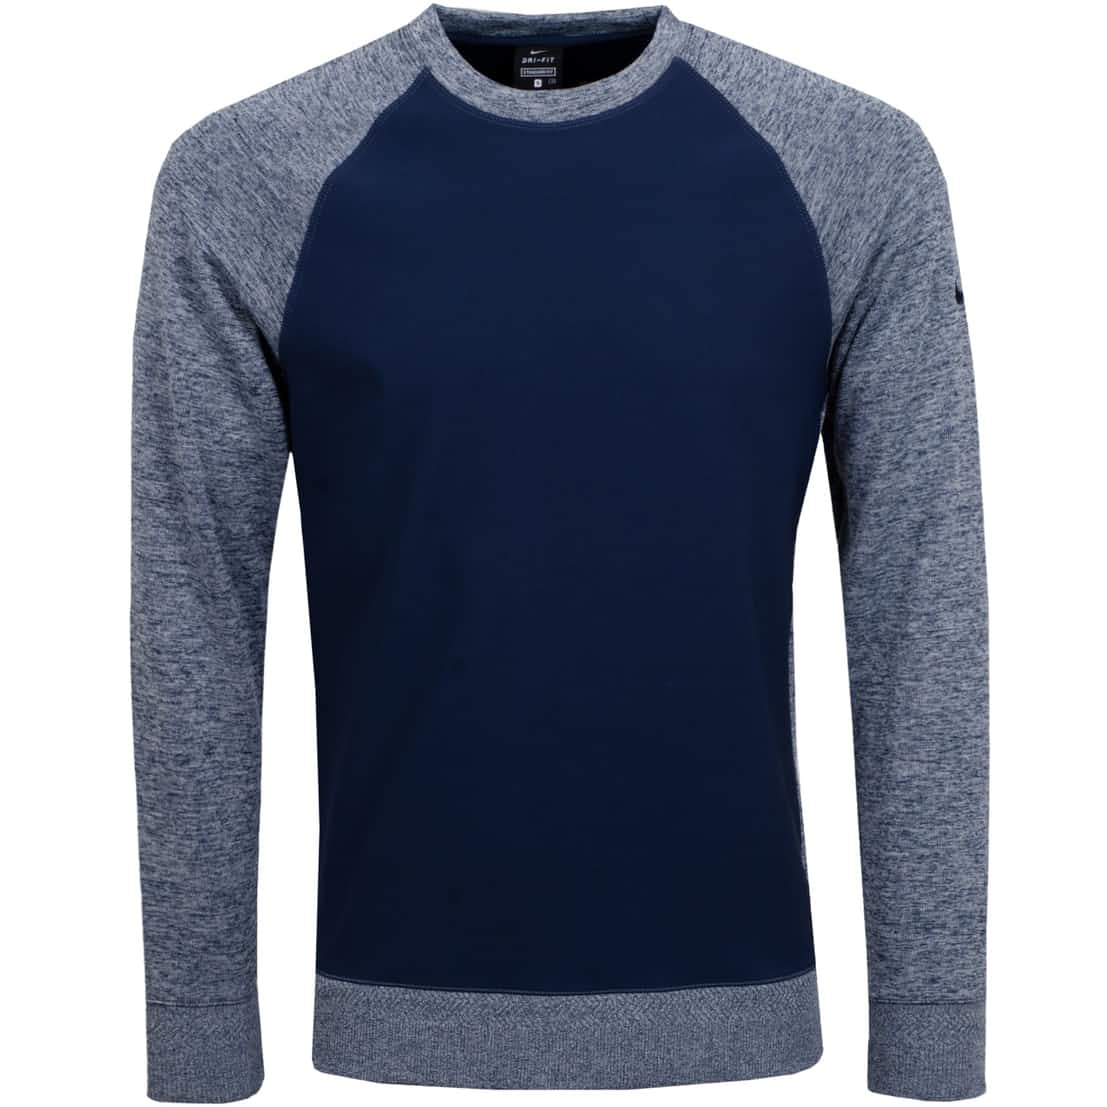 Dry LS Player Crew Obsidian - AW20